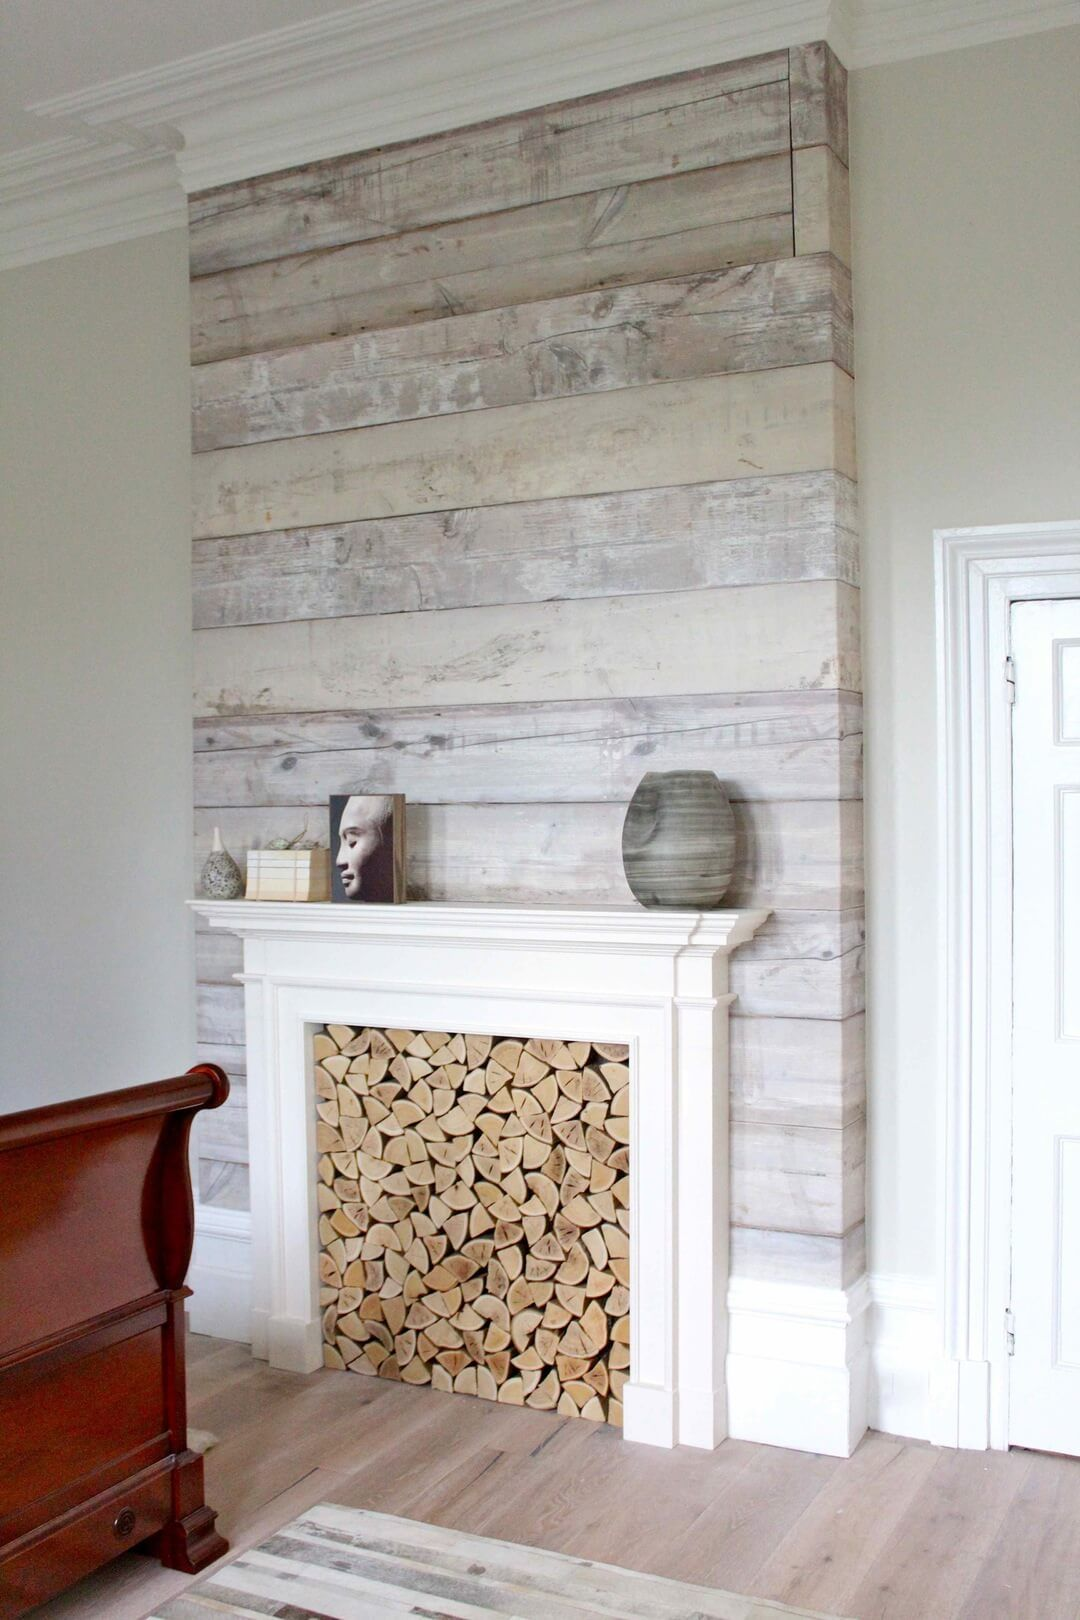 25 Naturally Beautiful Wood Walls for Your Home | Pinterest | White ...